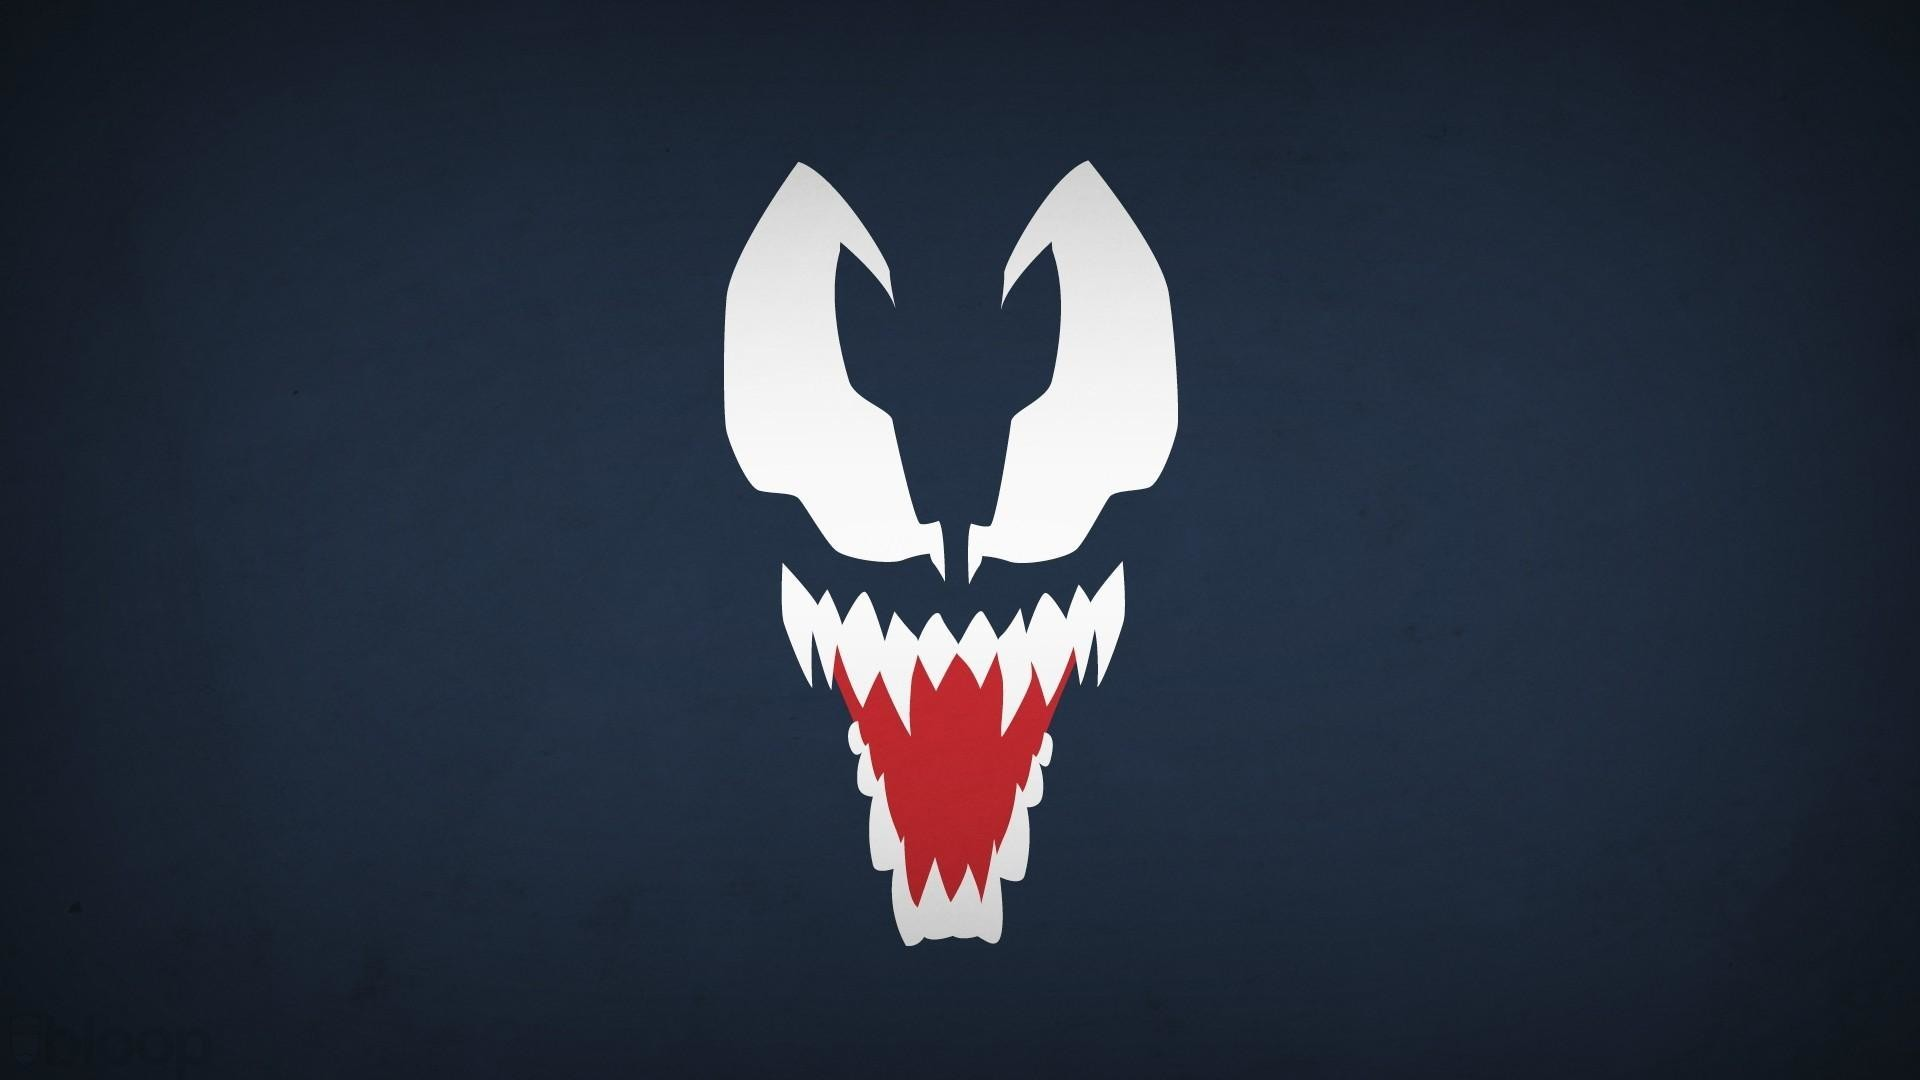 Venom Band Hd Wallpaper Wallpapertag